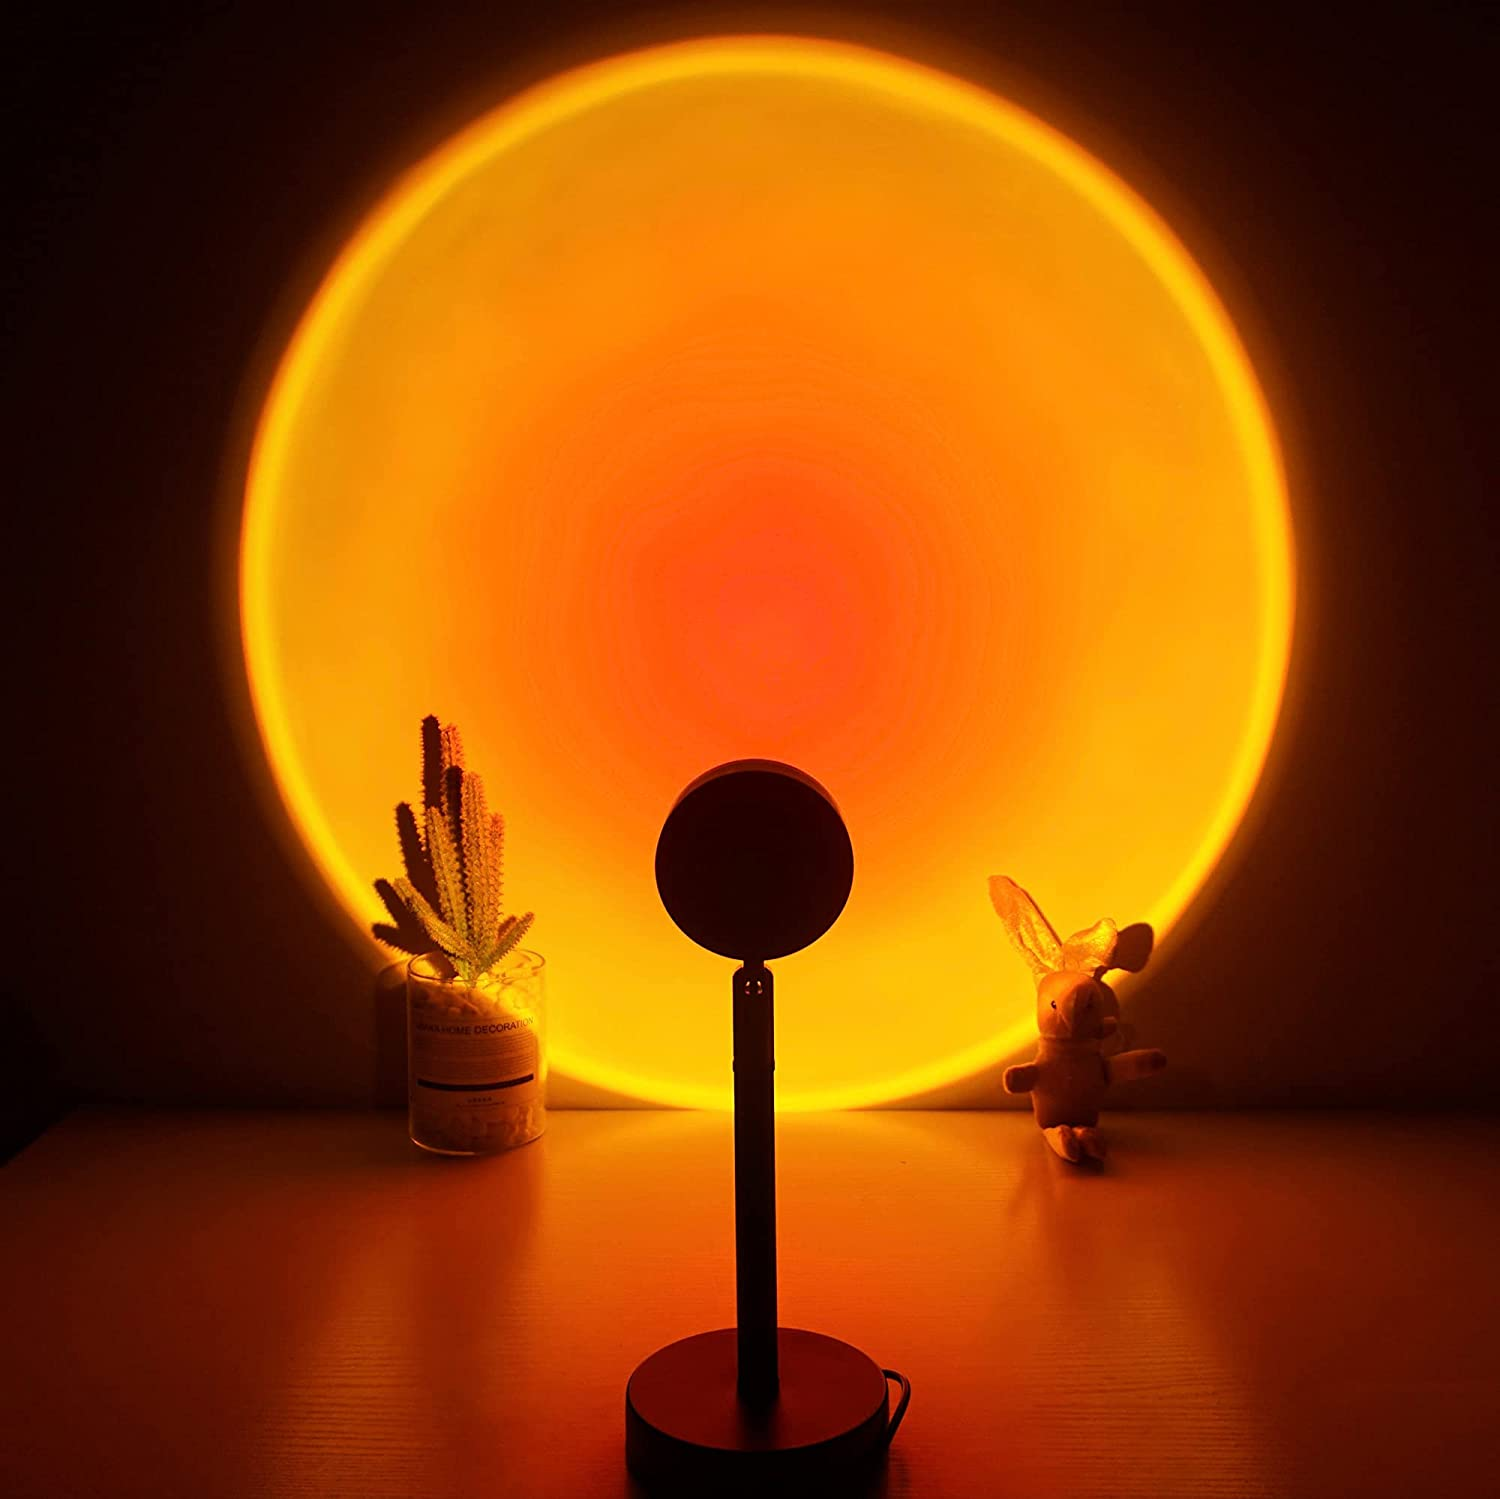 Sunset Lamp, Projector Sunset Light 180 Degree Rotation Projection Led Night Light for Photography/Selfie/Home/Living Room/Bedroom Decor, USB Charging (Sunset Red)